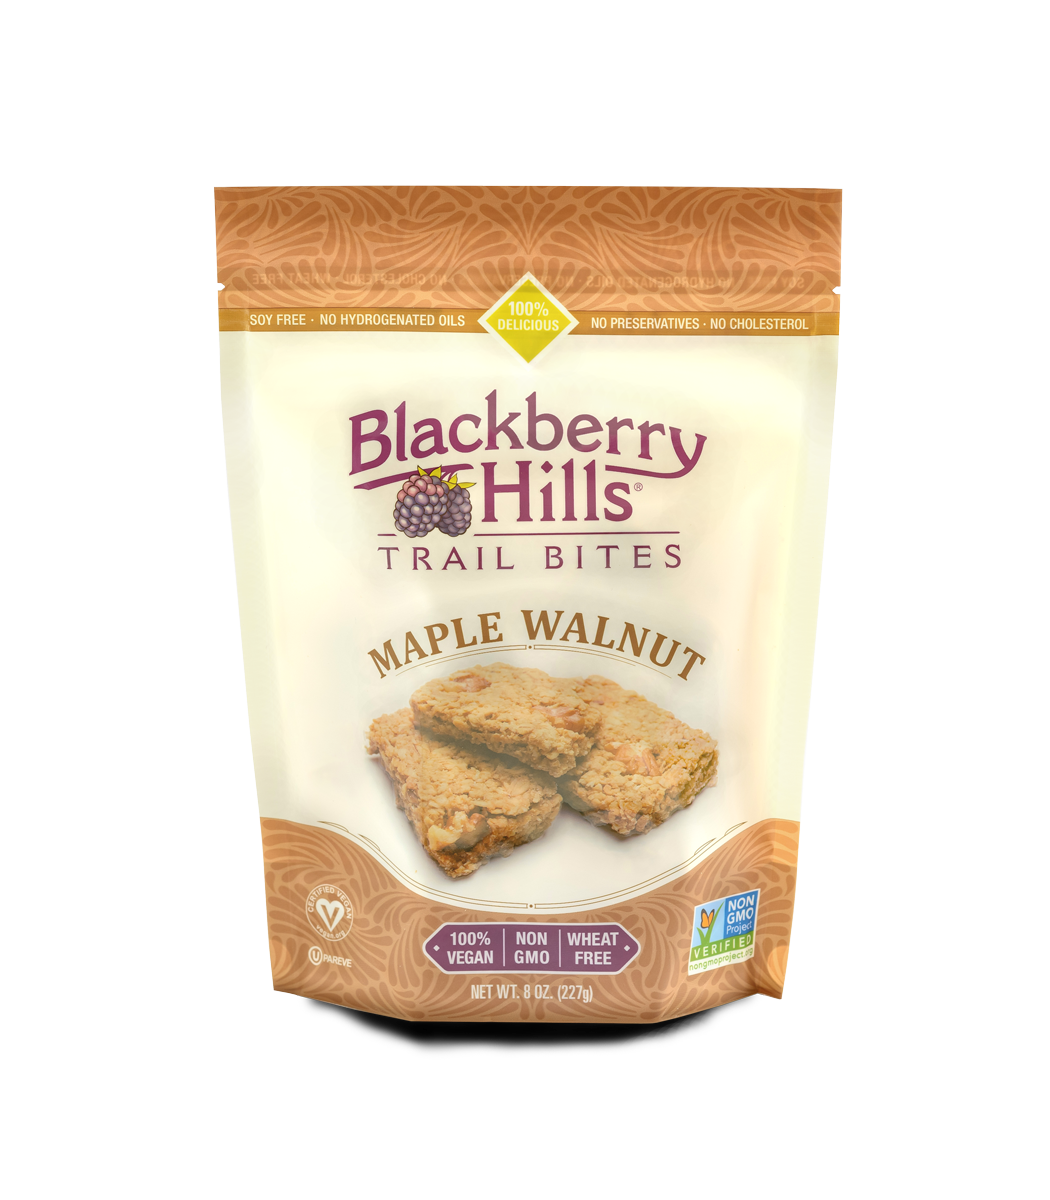 Maple Walnut Trail Bites